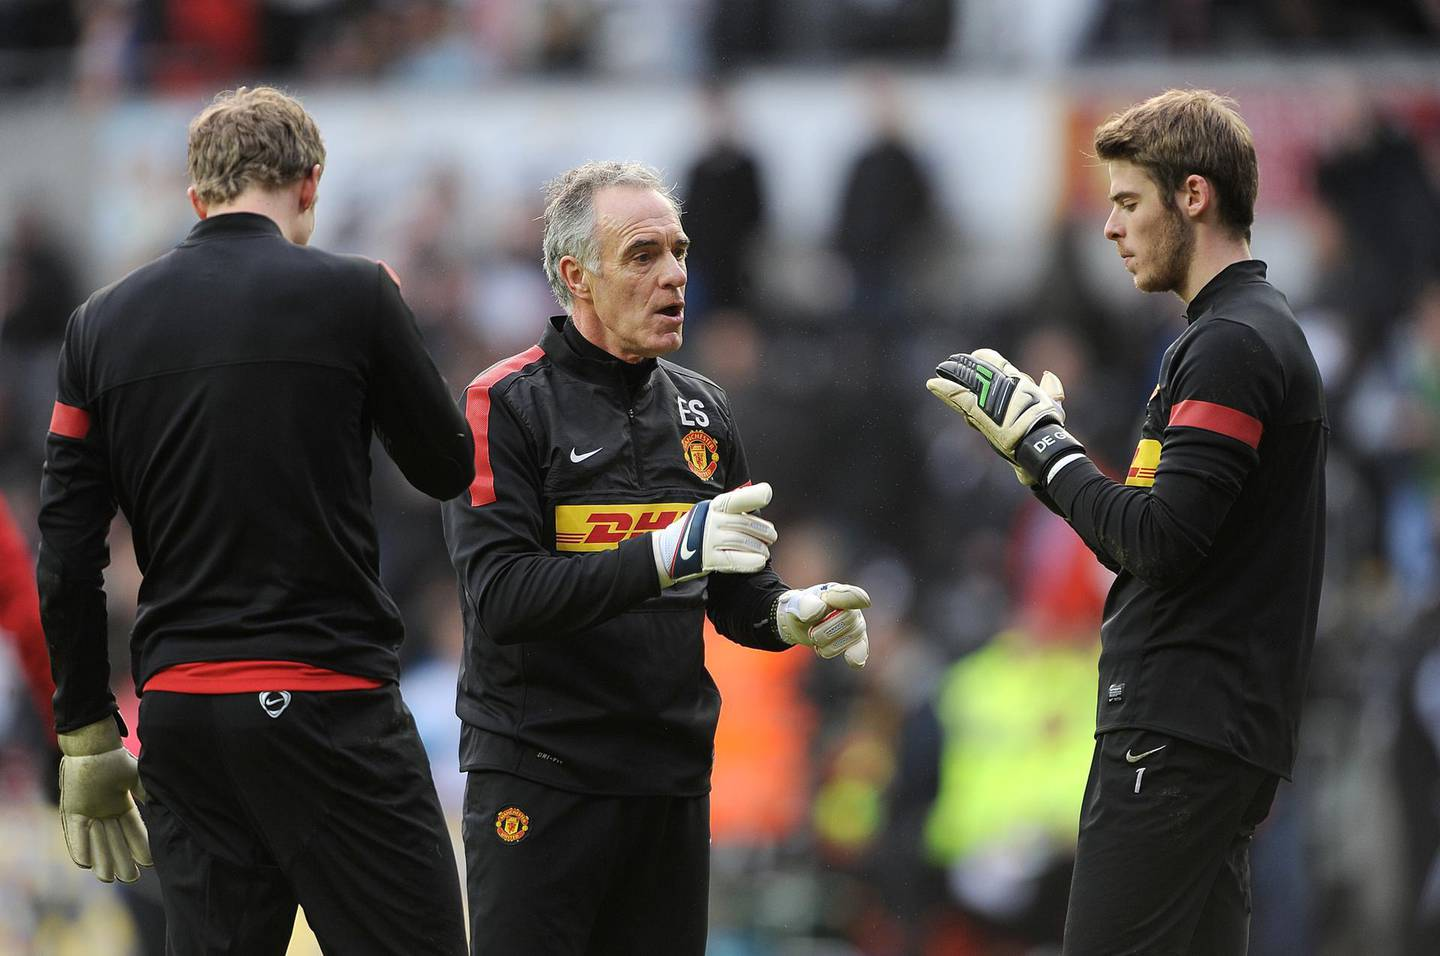 Manchester United goalkeeing coach Eric Steele (centre) speaks with goalkeeper David De Gea (right) during warm-up   (Photo by Nigel French - PA Images via Getty Images)